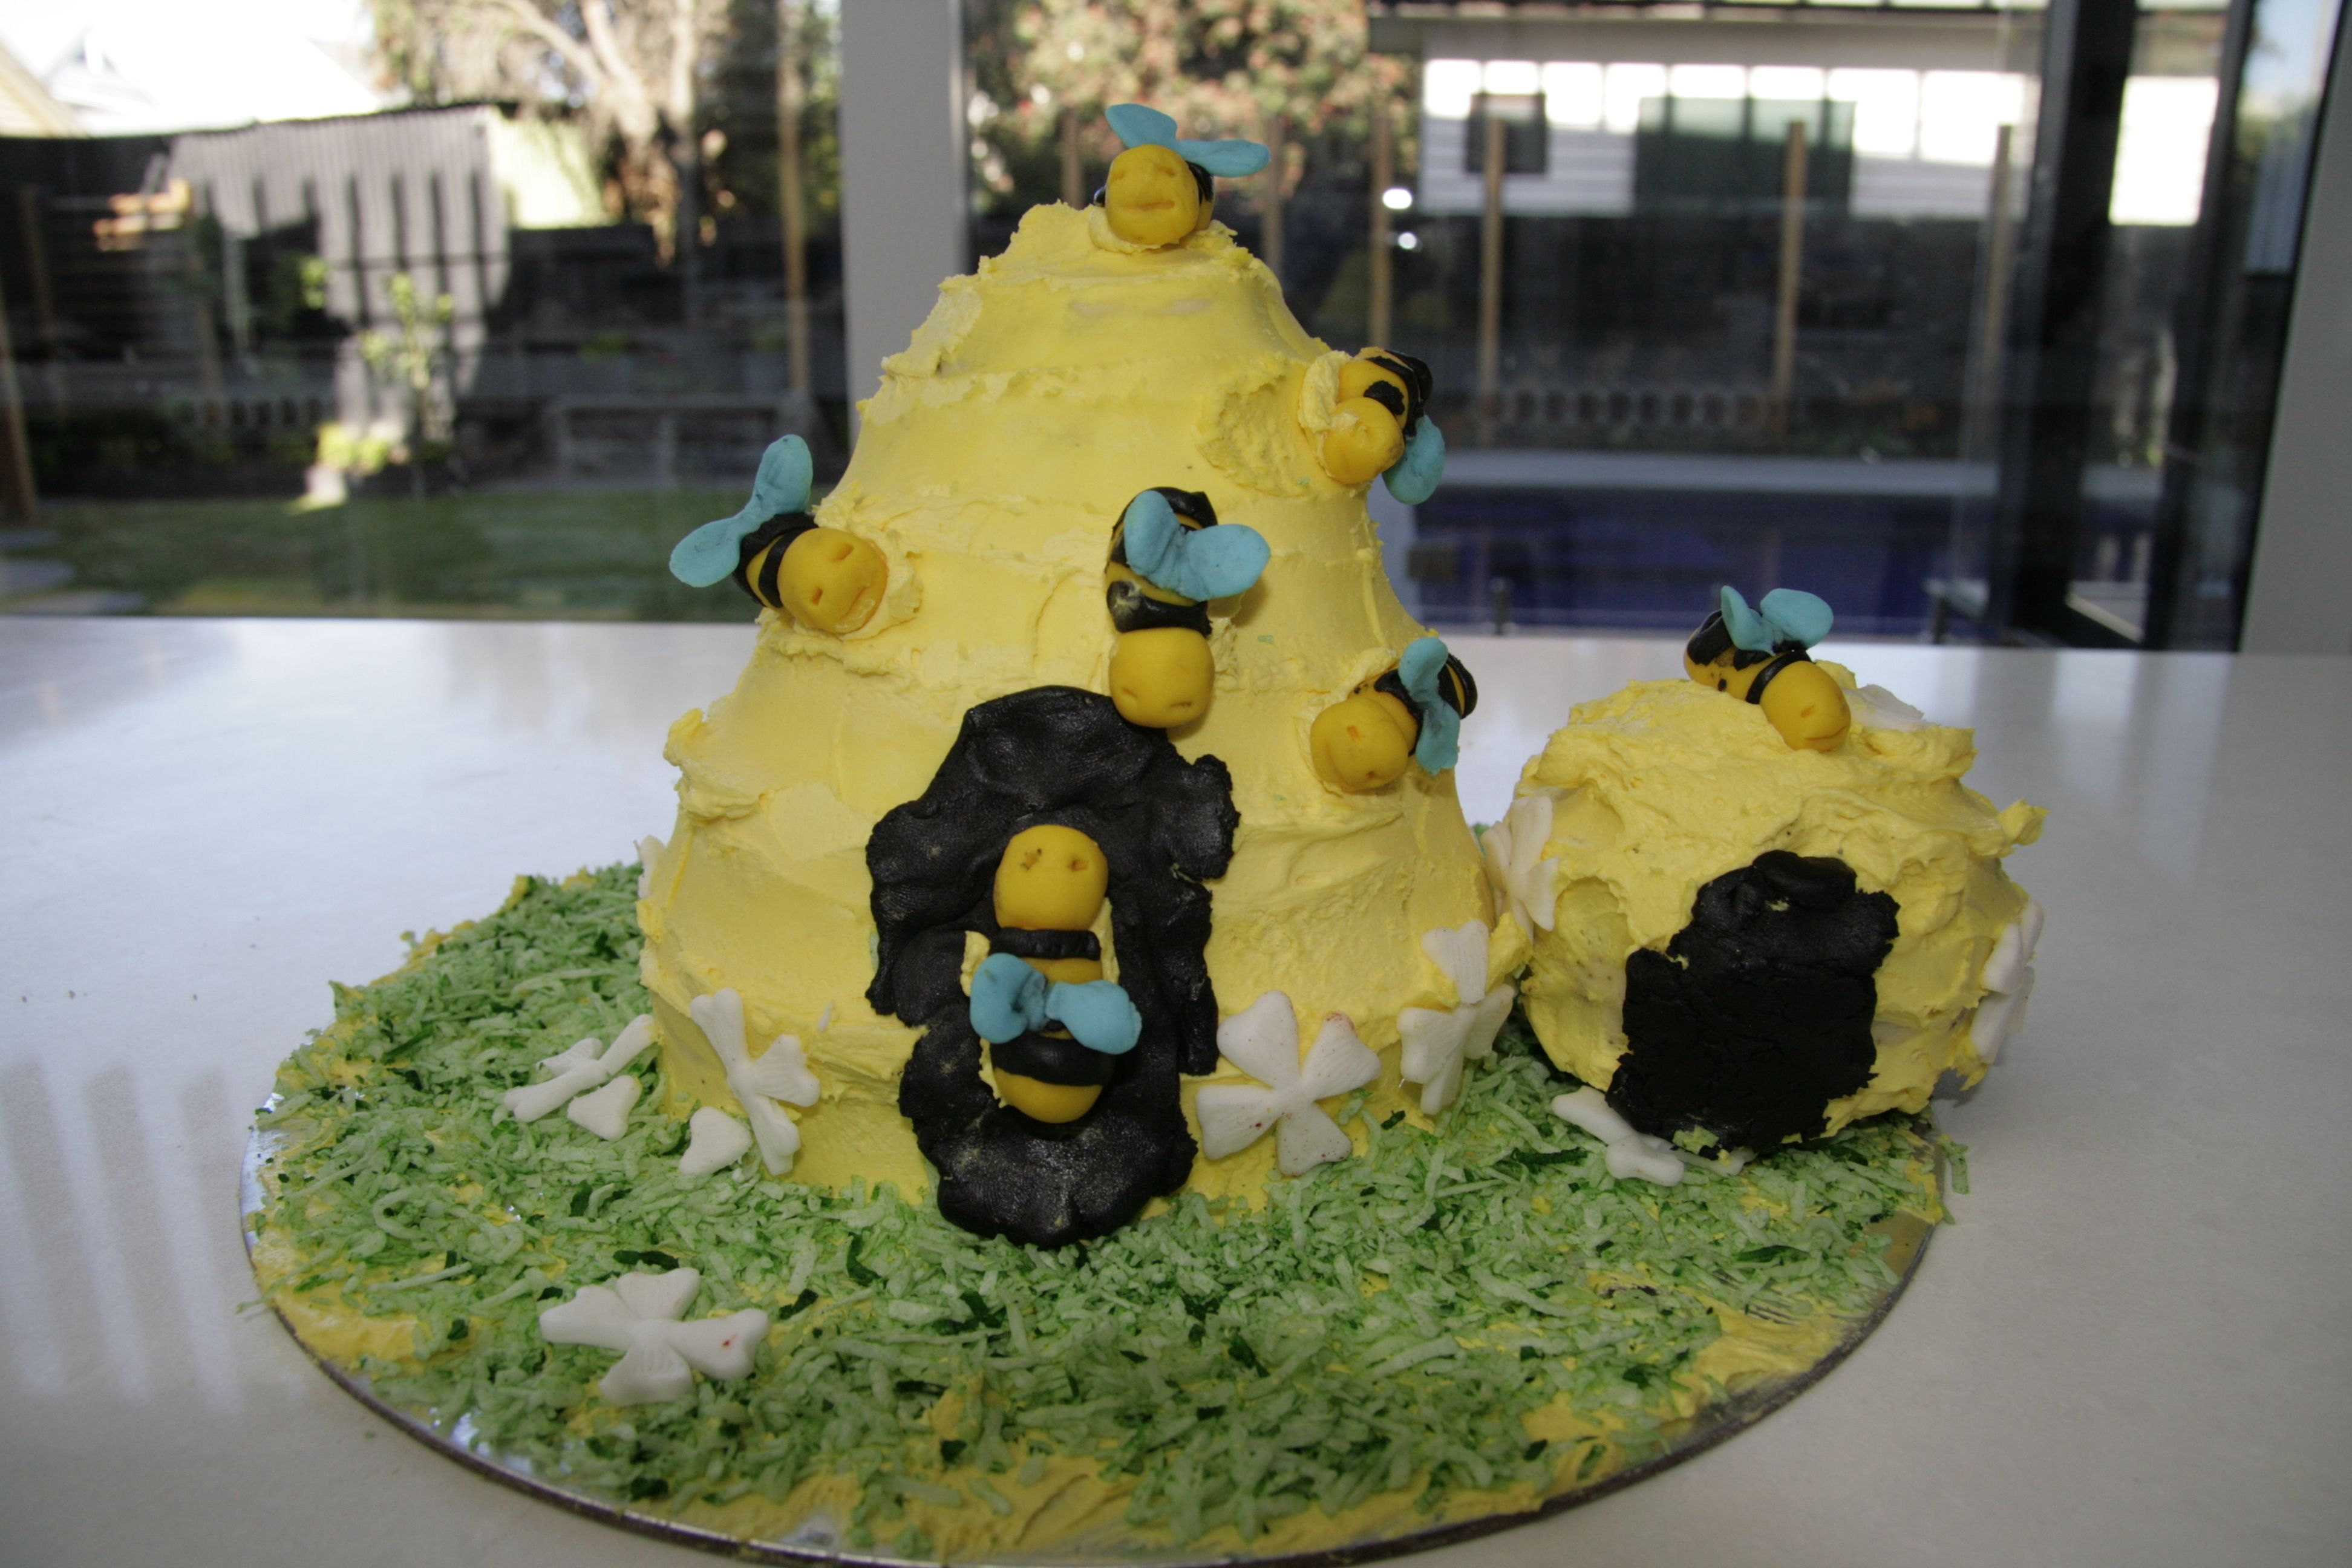 bee hive cake created by my 7 1/2 year old son, buttercream icing and fondant bees